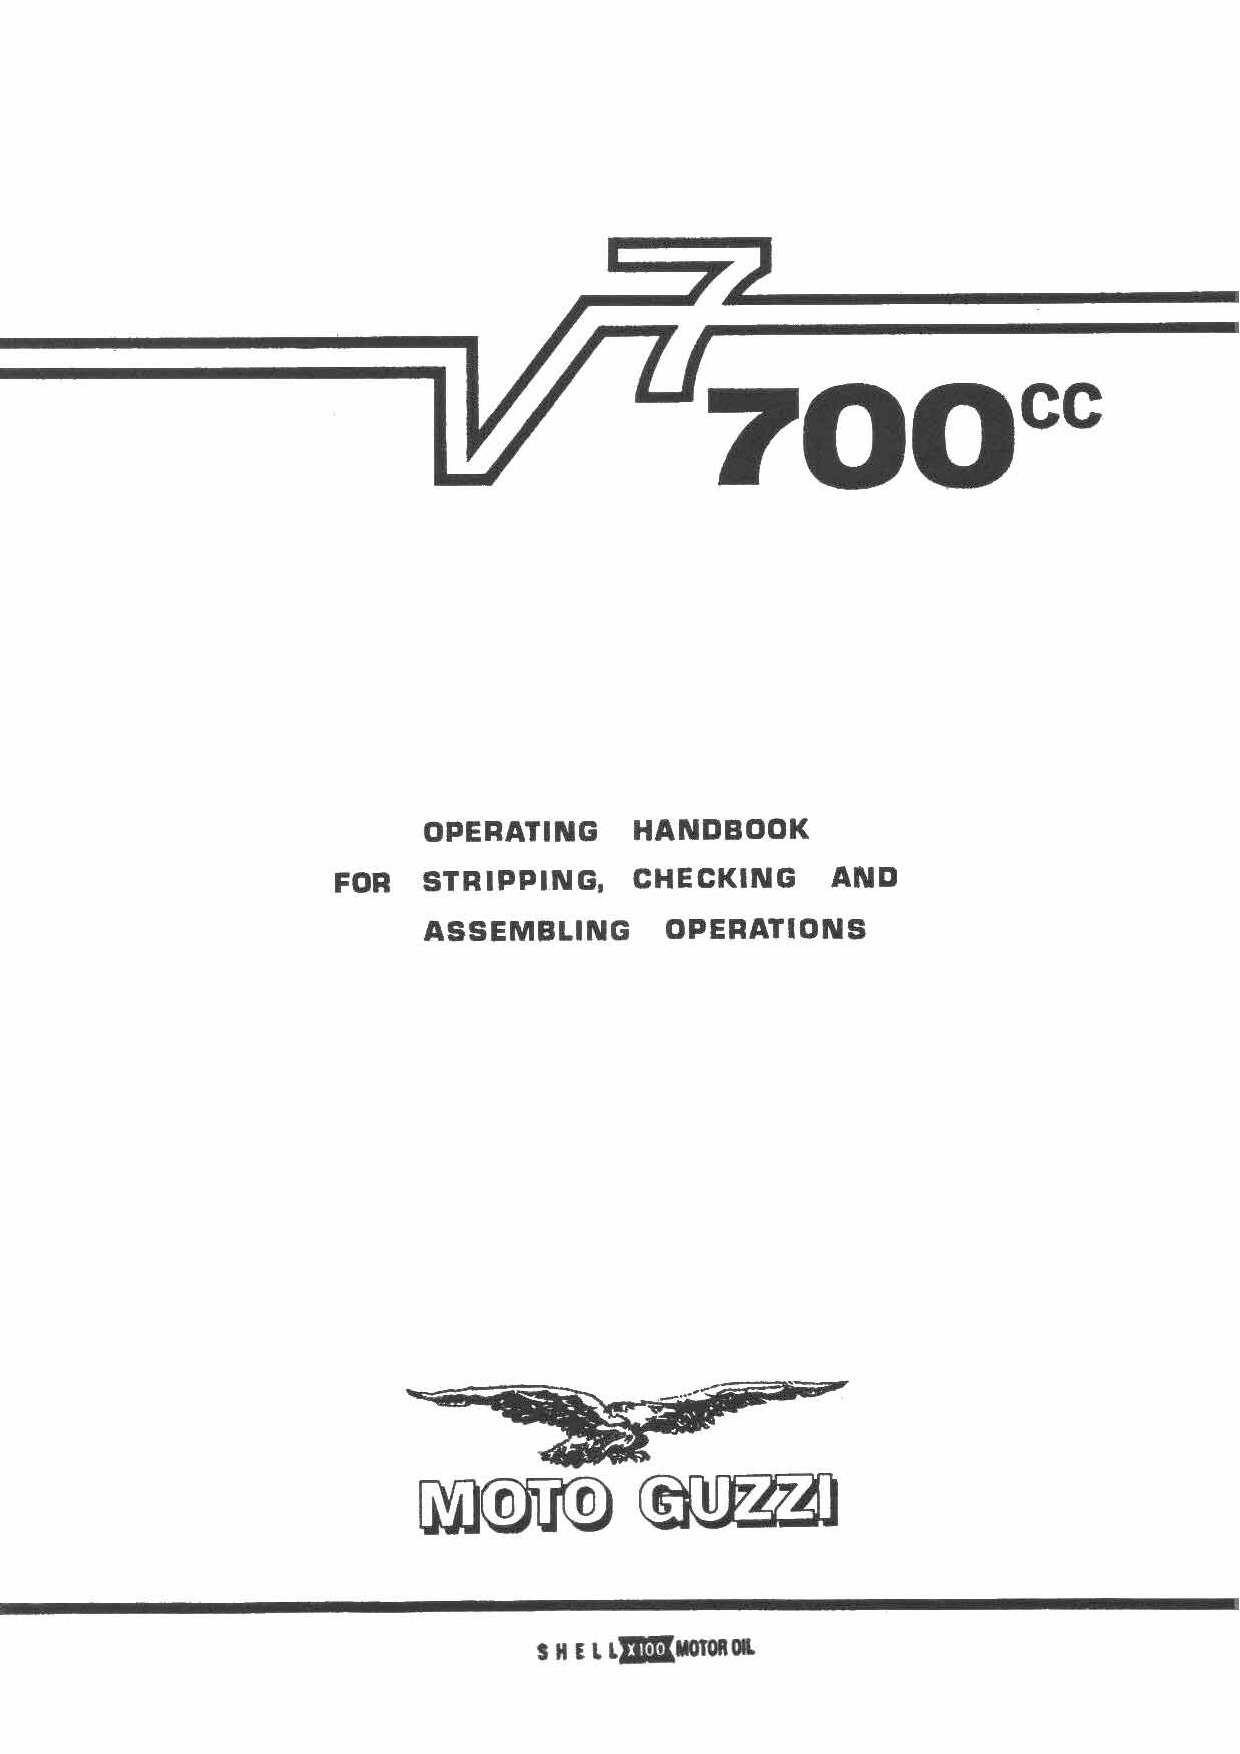 Moto Guzzi V7 700 Repair Manual Pdf Download